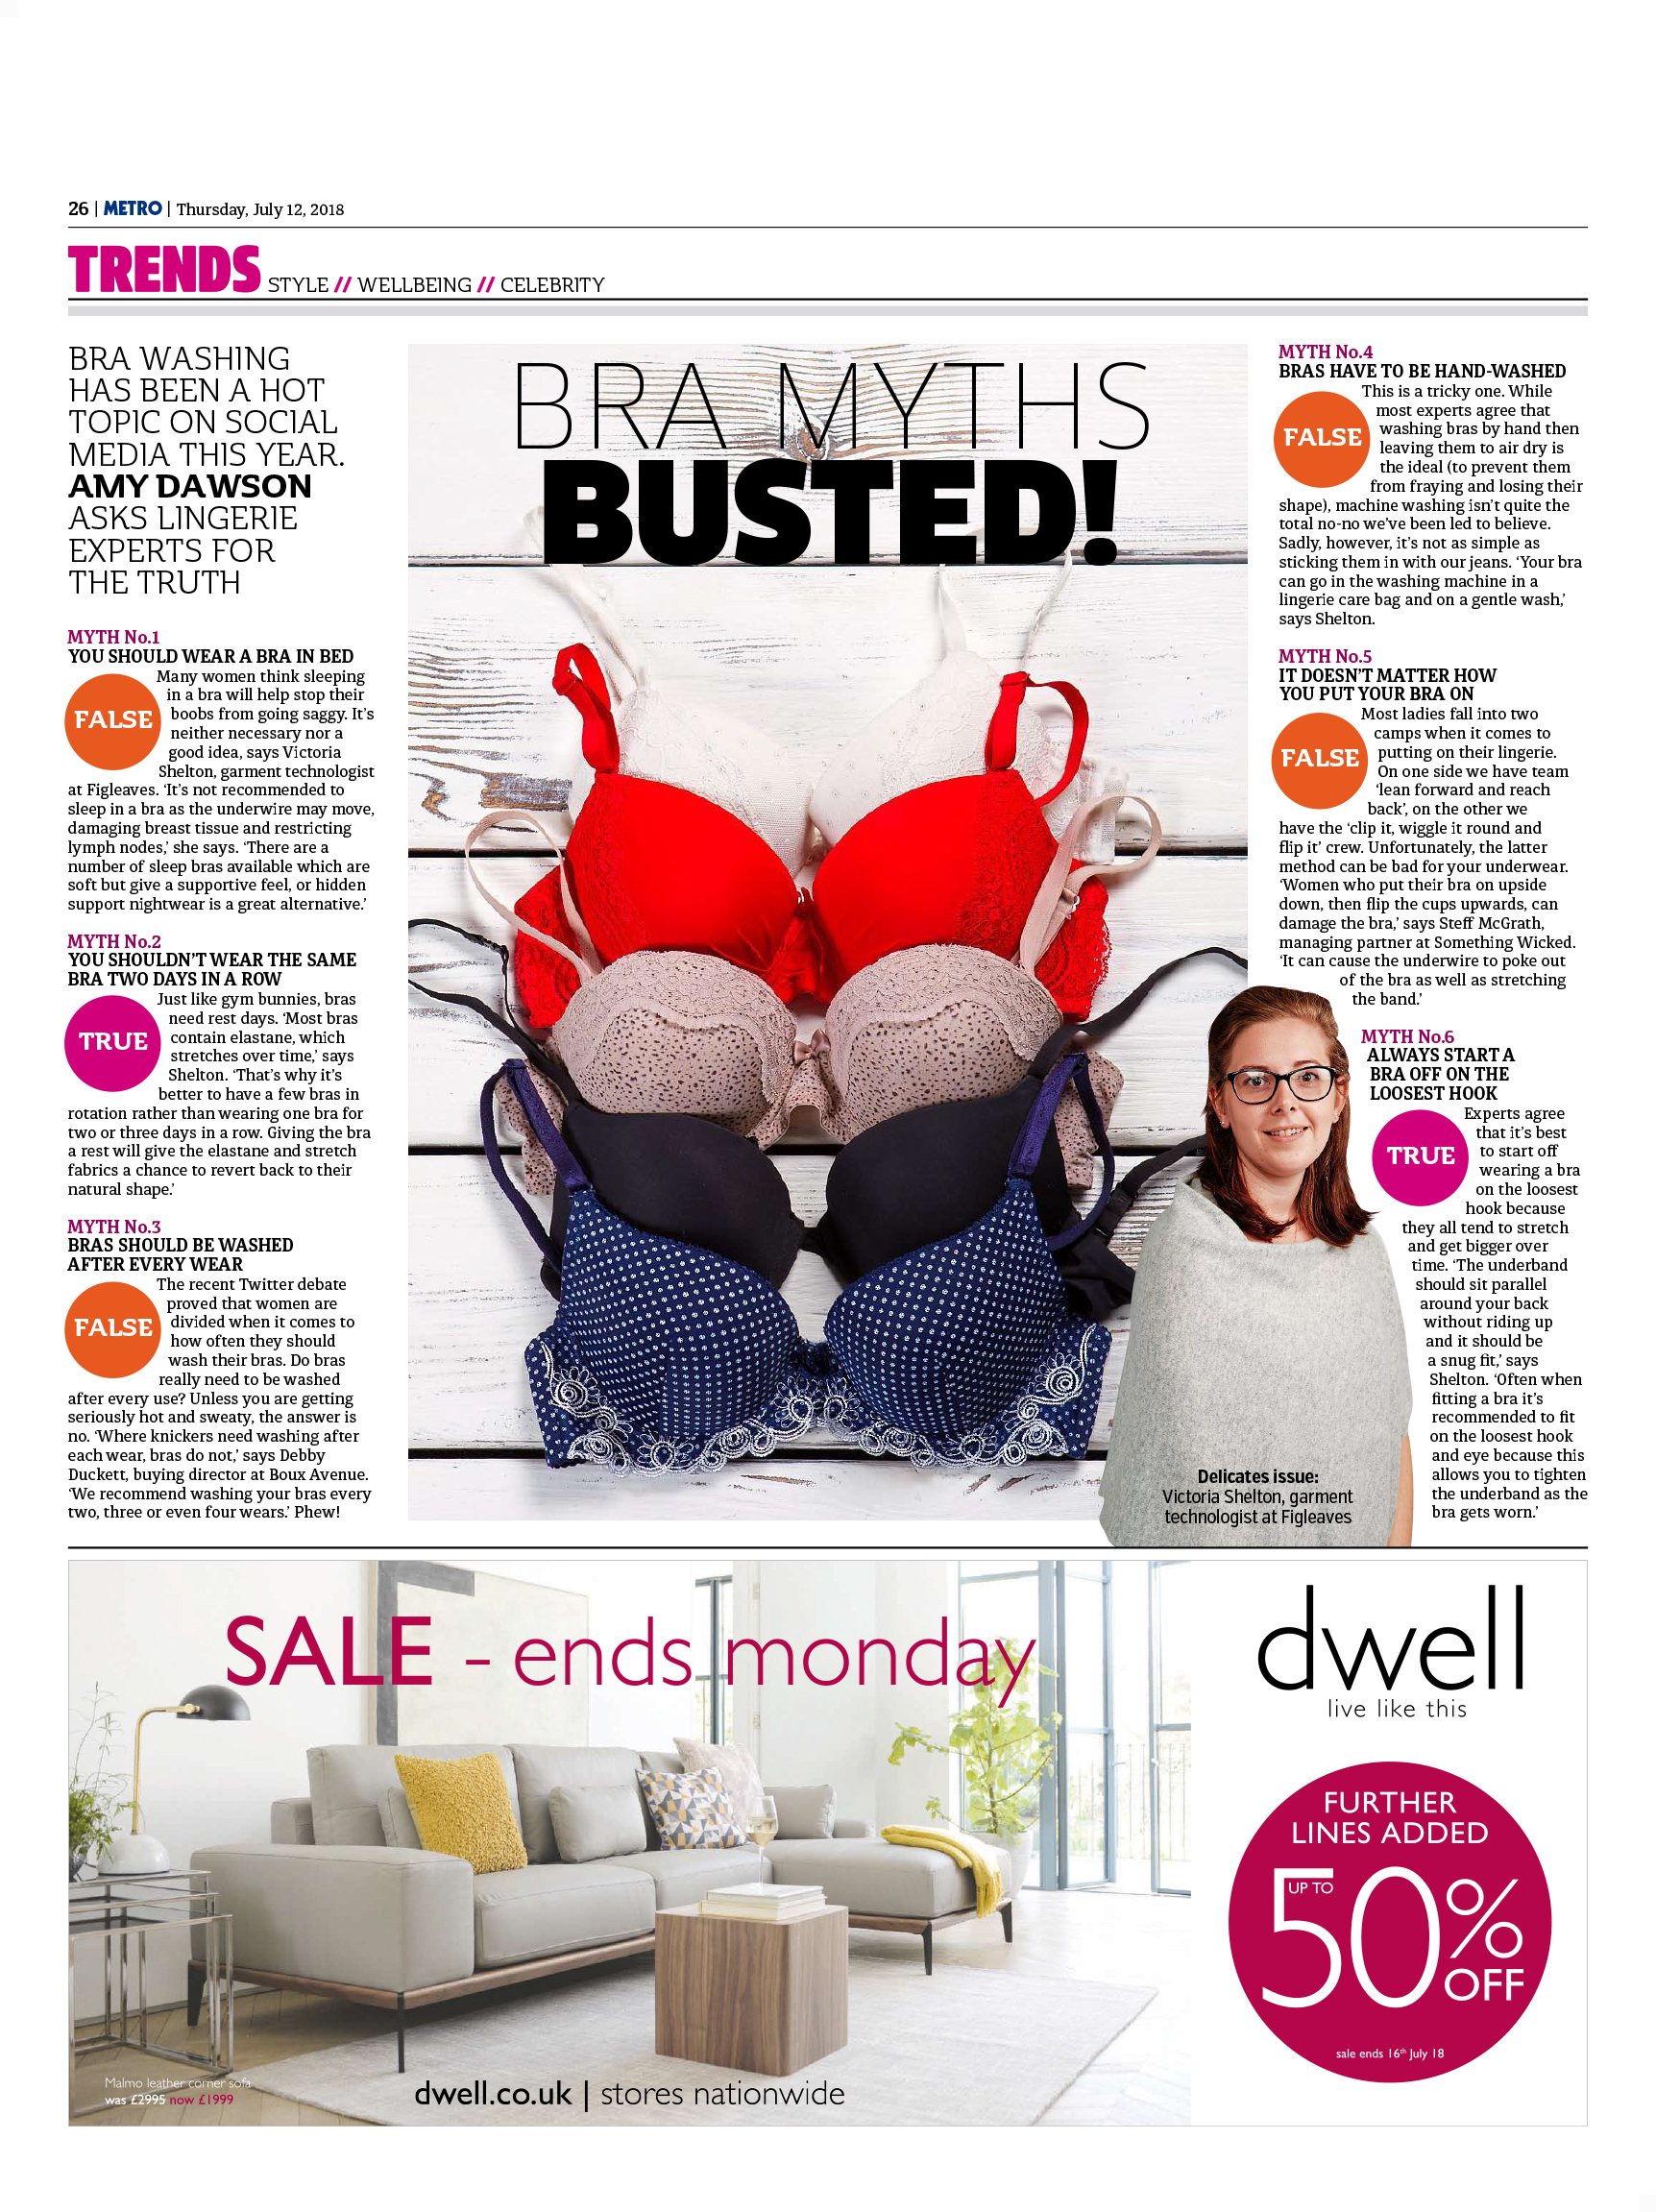 Bra Myths Busted! (Metro, 12th July 2018)